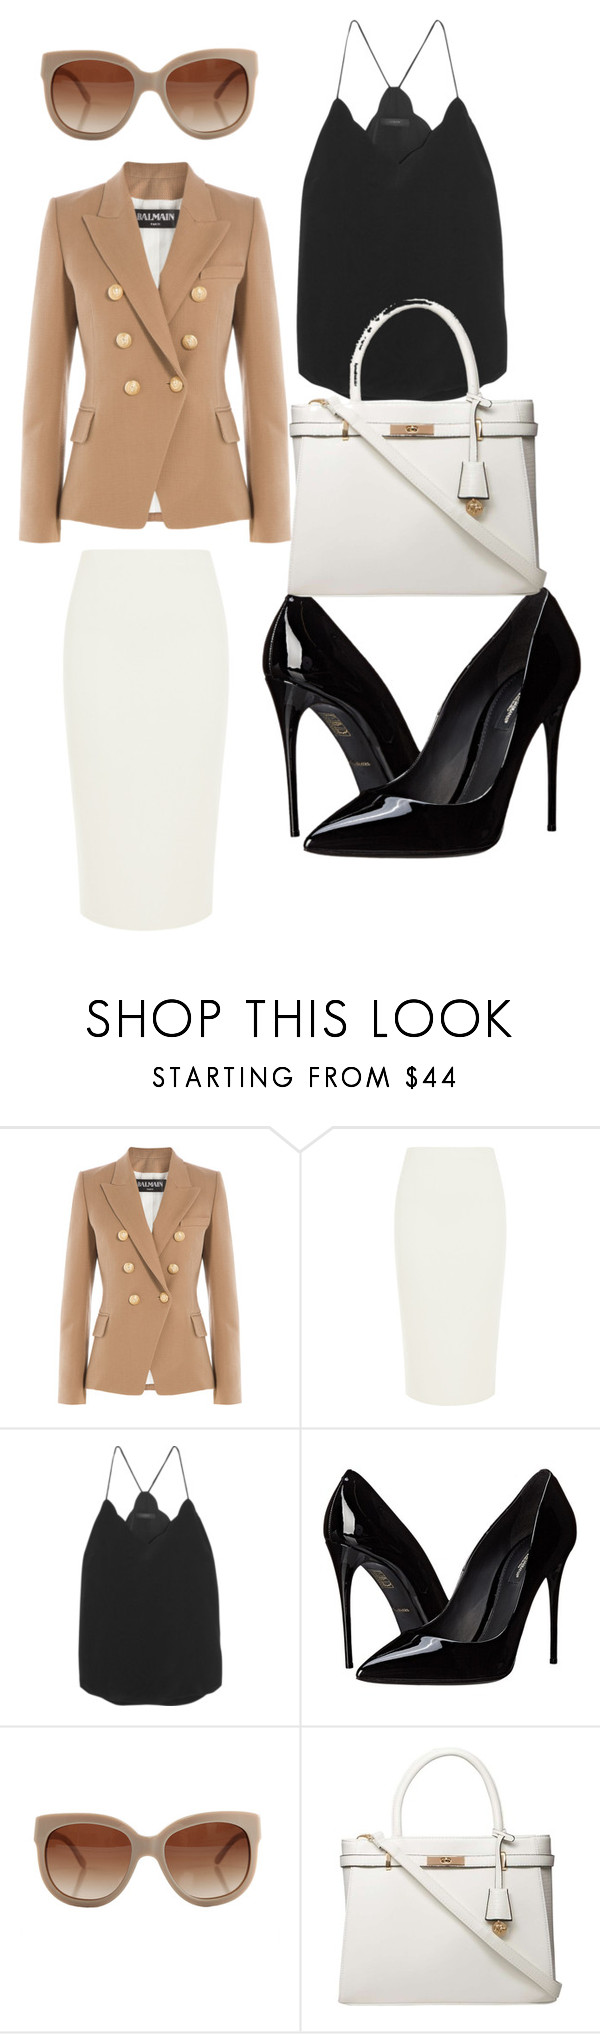 """""""Work wear"""" by xeebae on Polyvore featuring Balmain, C/MEO COLLECTIVE, J.Crew, Dolce&Gabbana, STELLA McCARTNEY and Dorothy Perkins"""